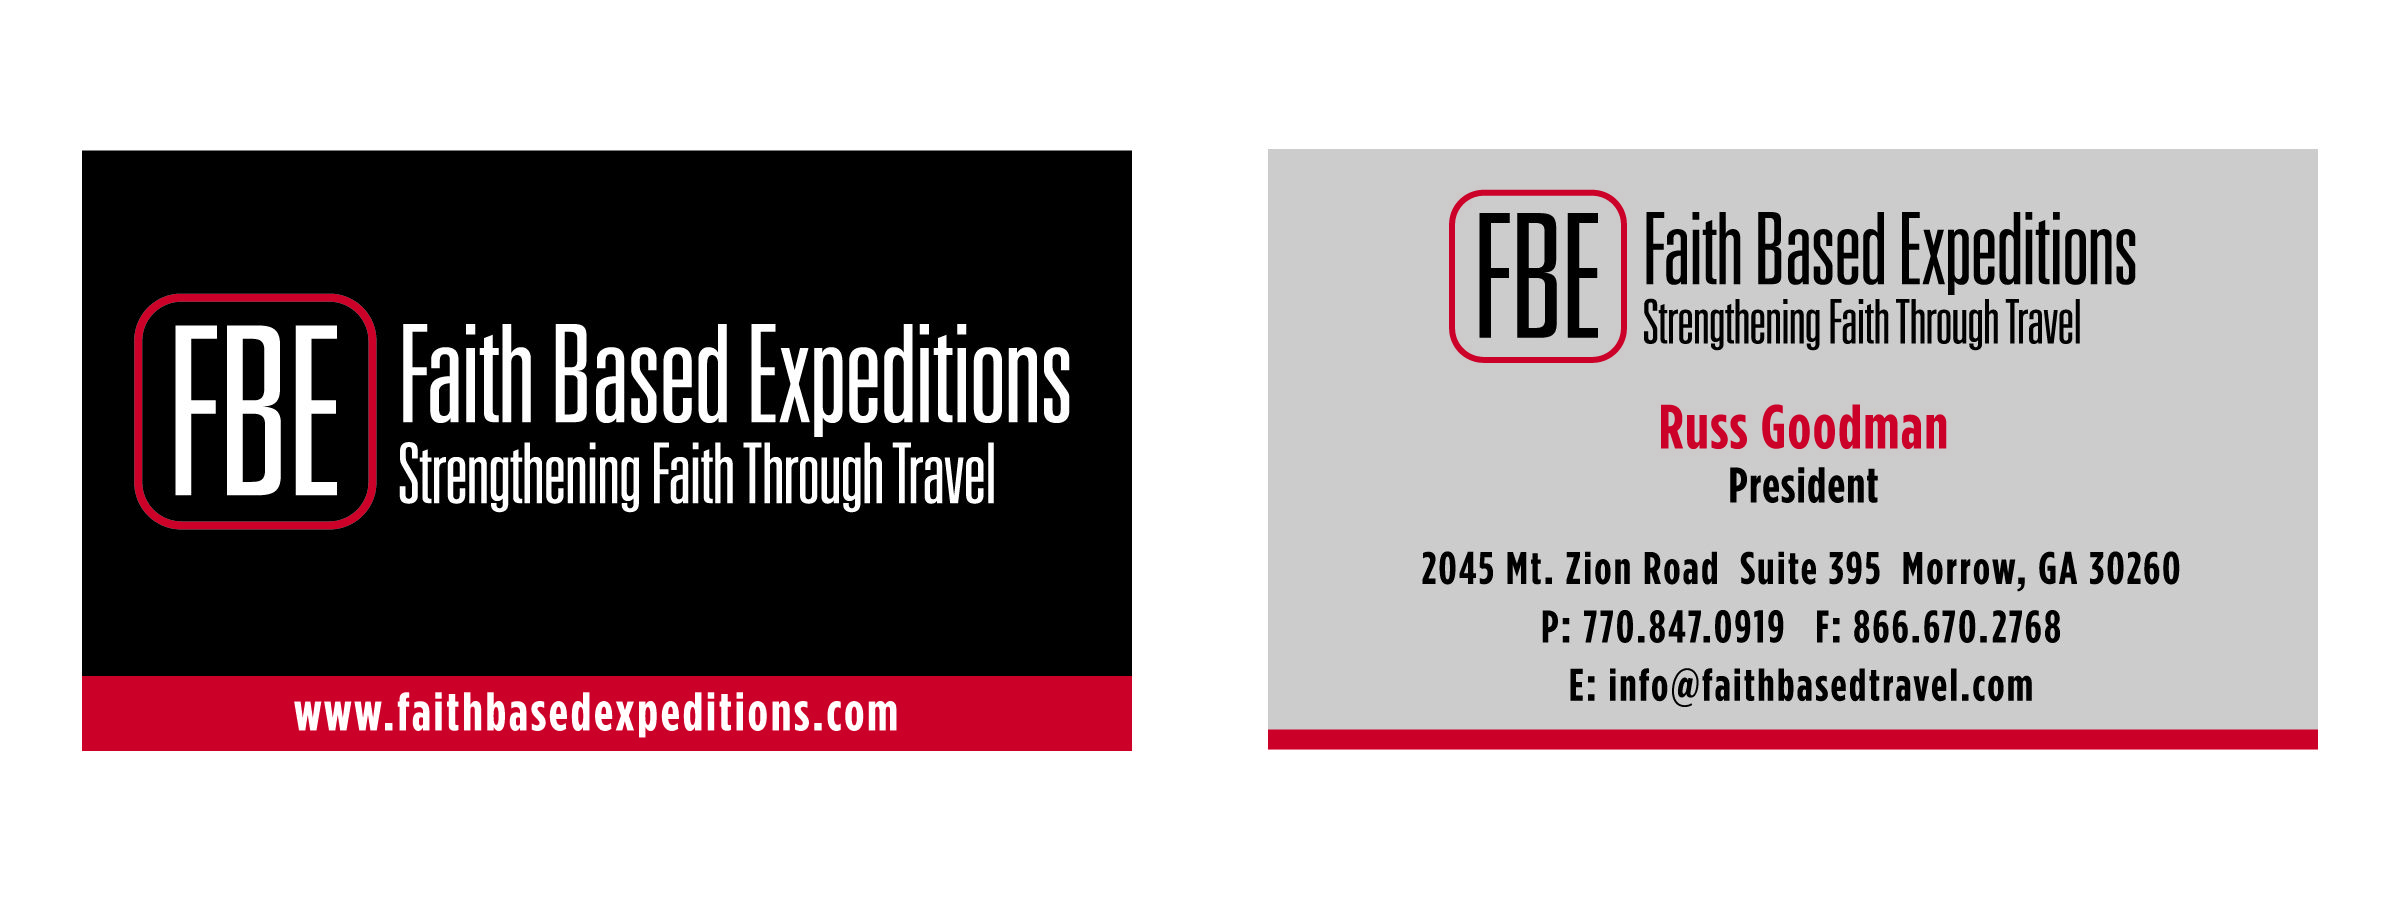 Business Card Design For Faith Based Expeditions My Work Traci